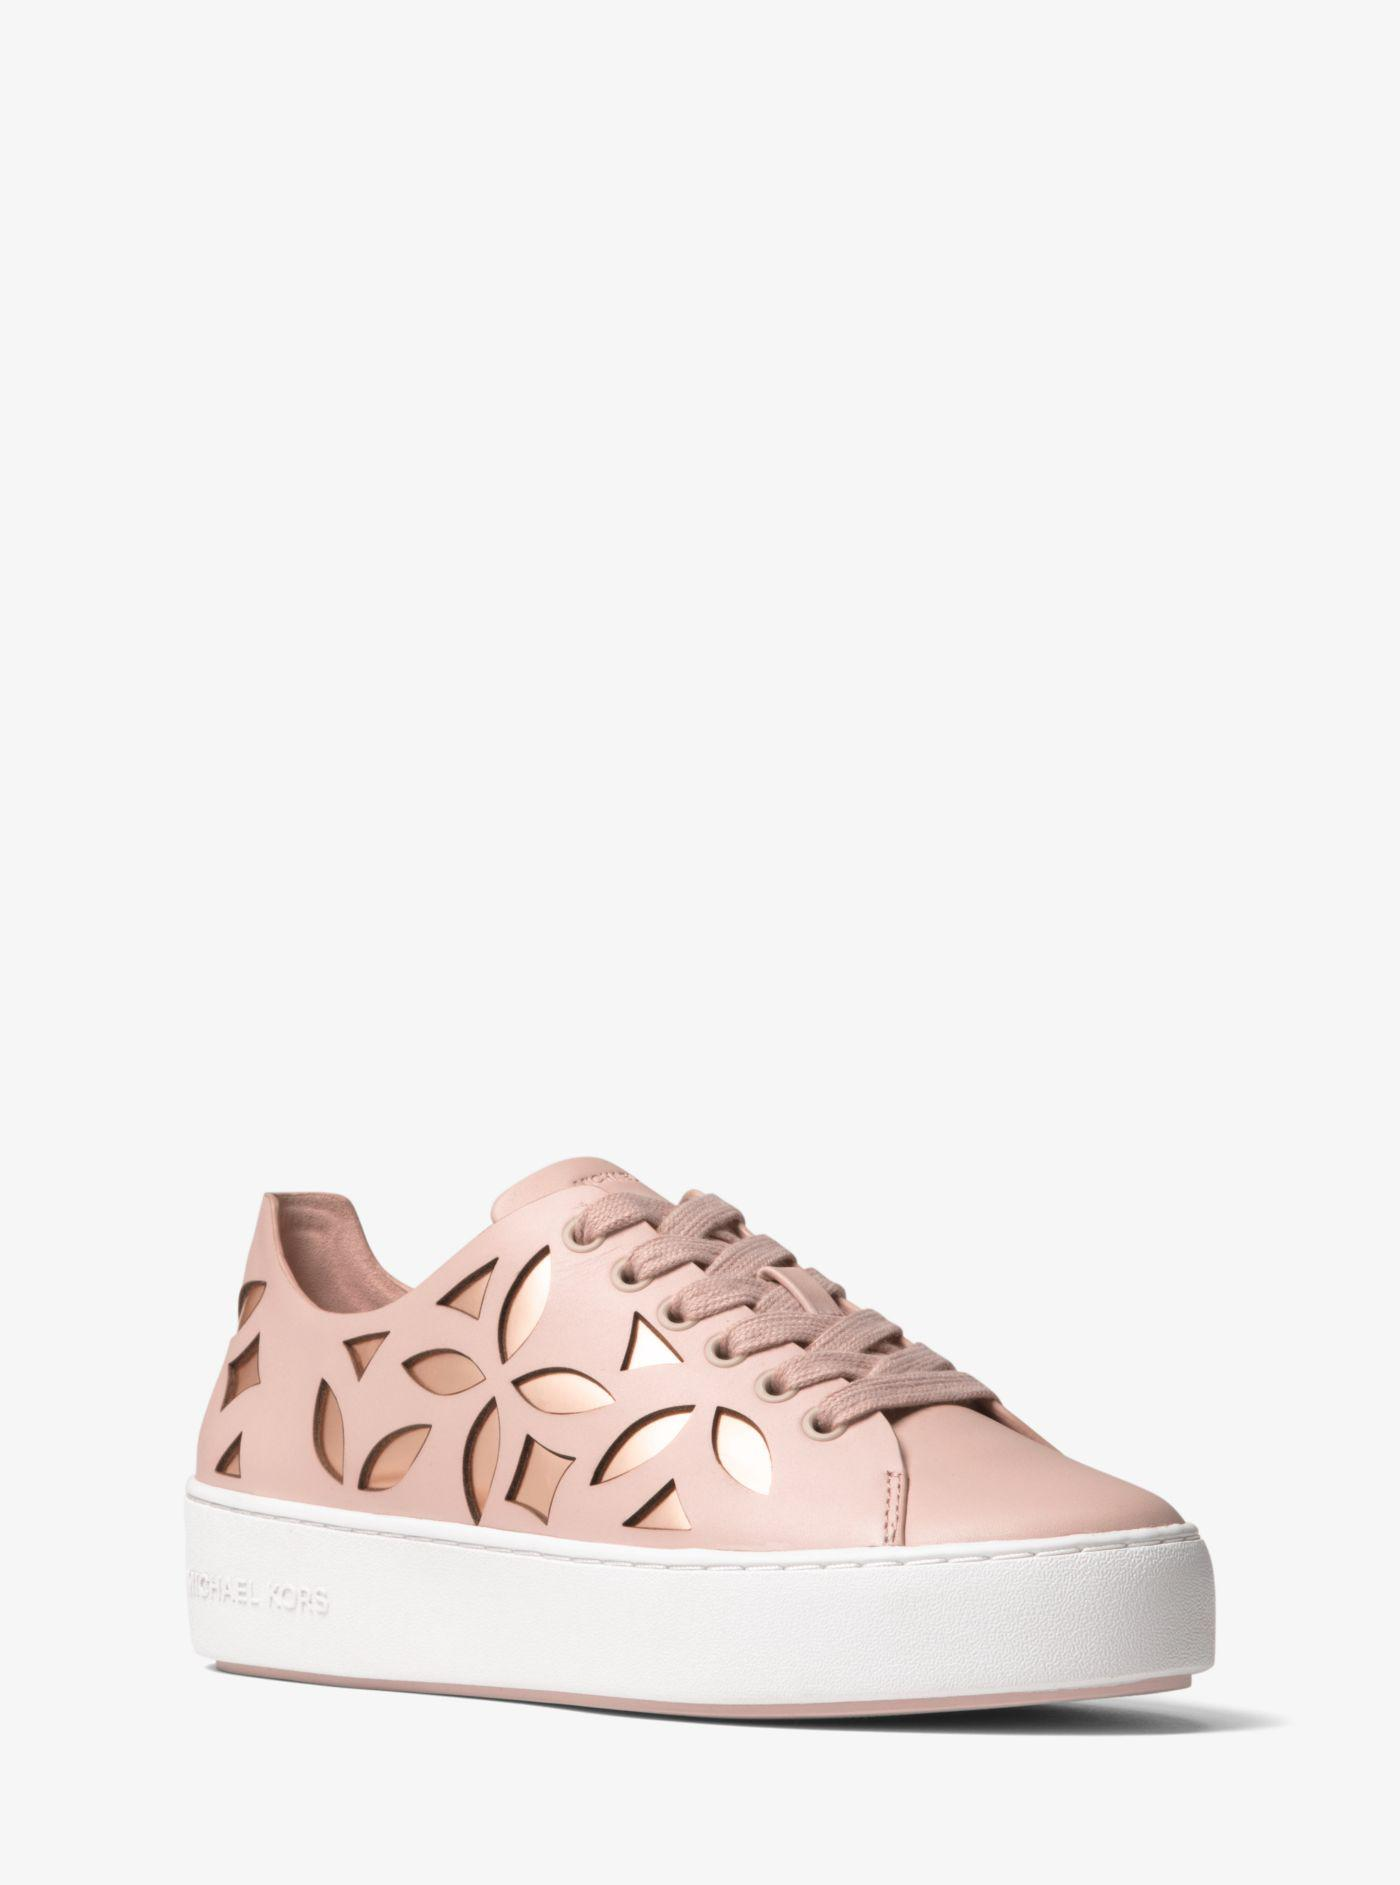 Mimi Metallic Laser Perforated Trainer Sneakers FVcS83yy